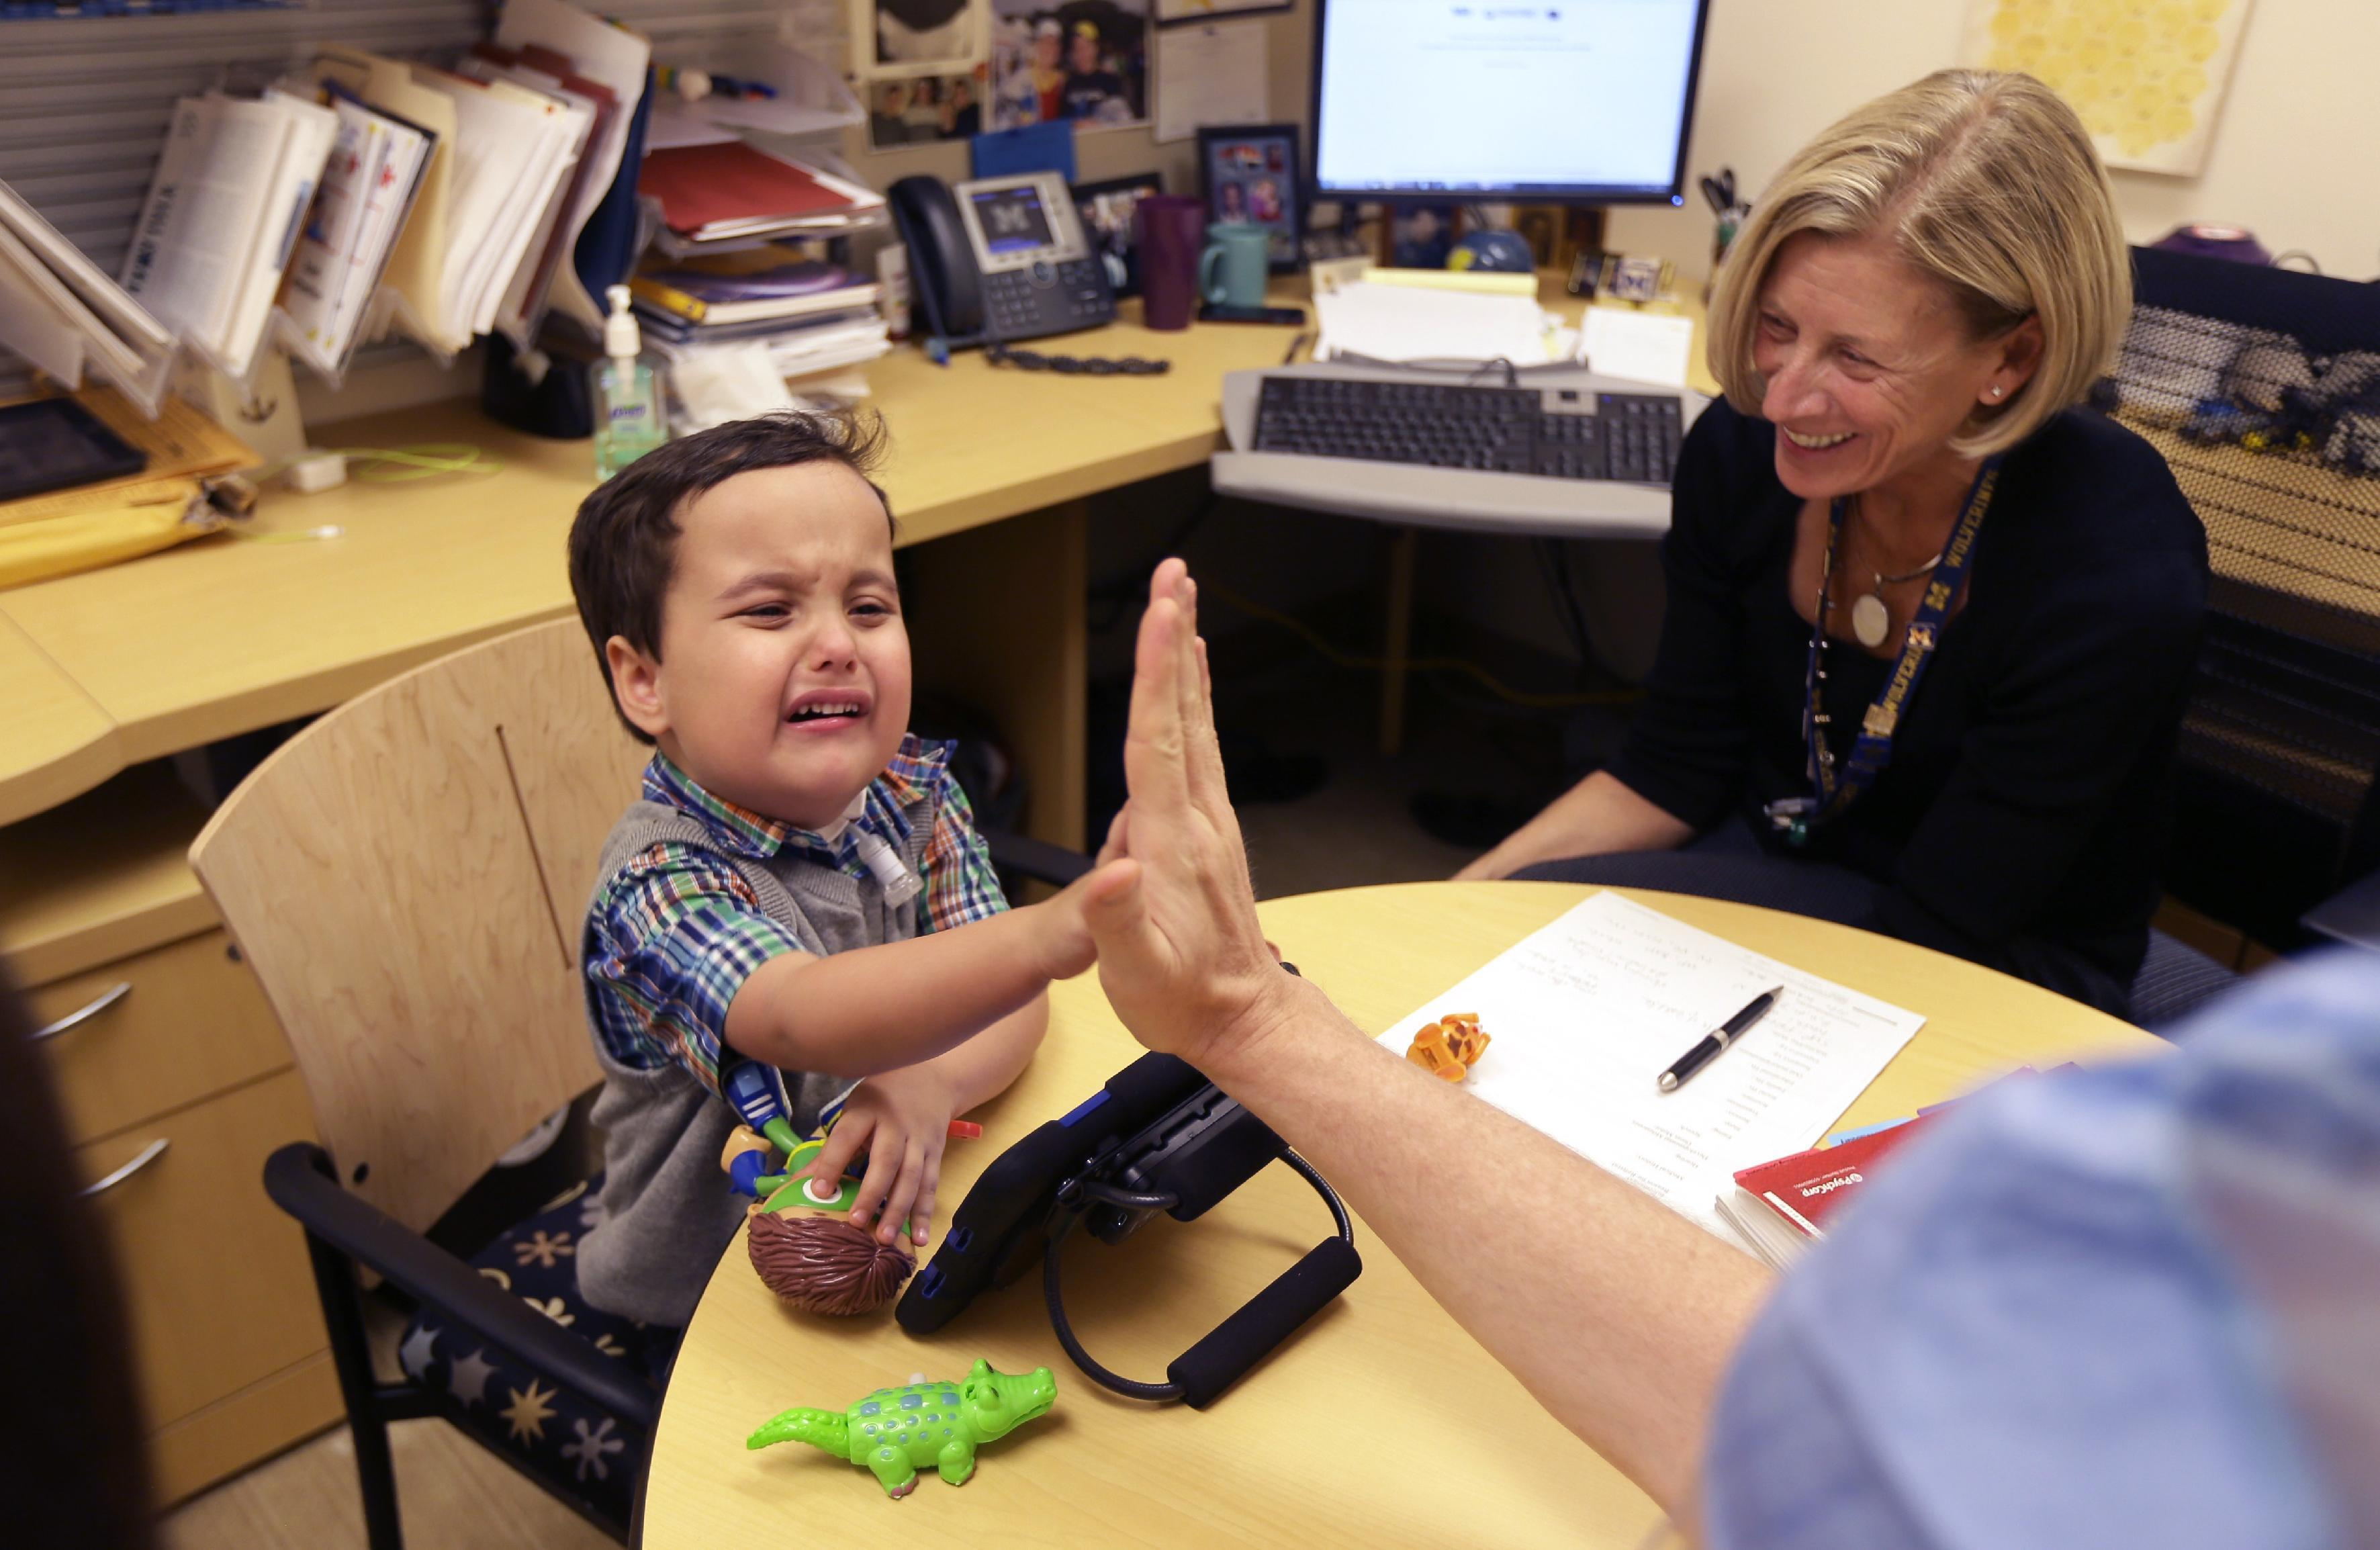 Born with no voice & low odds, boy talks with new voice box